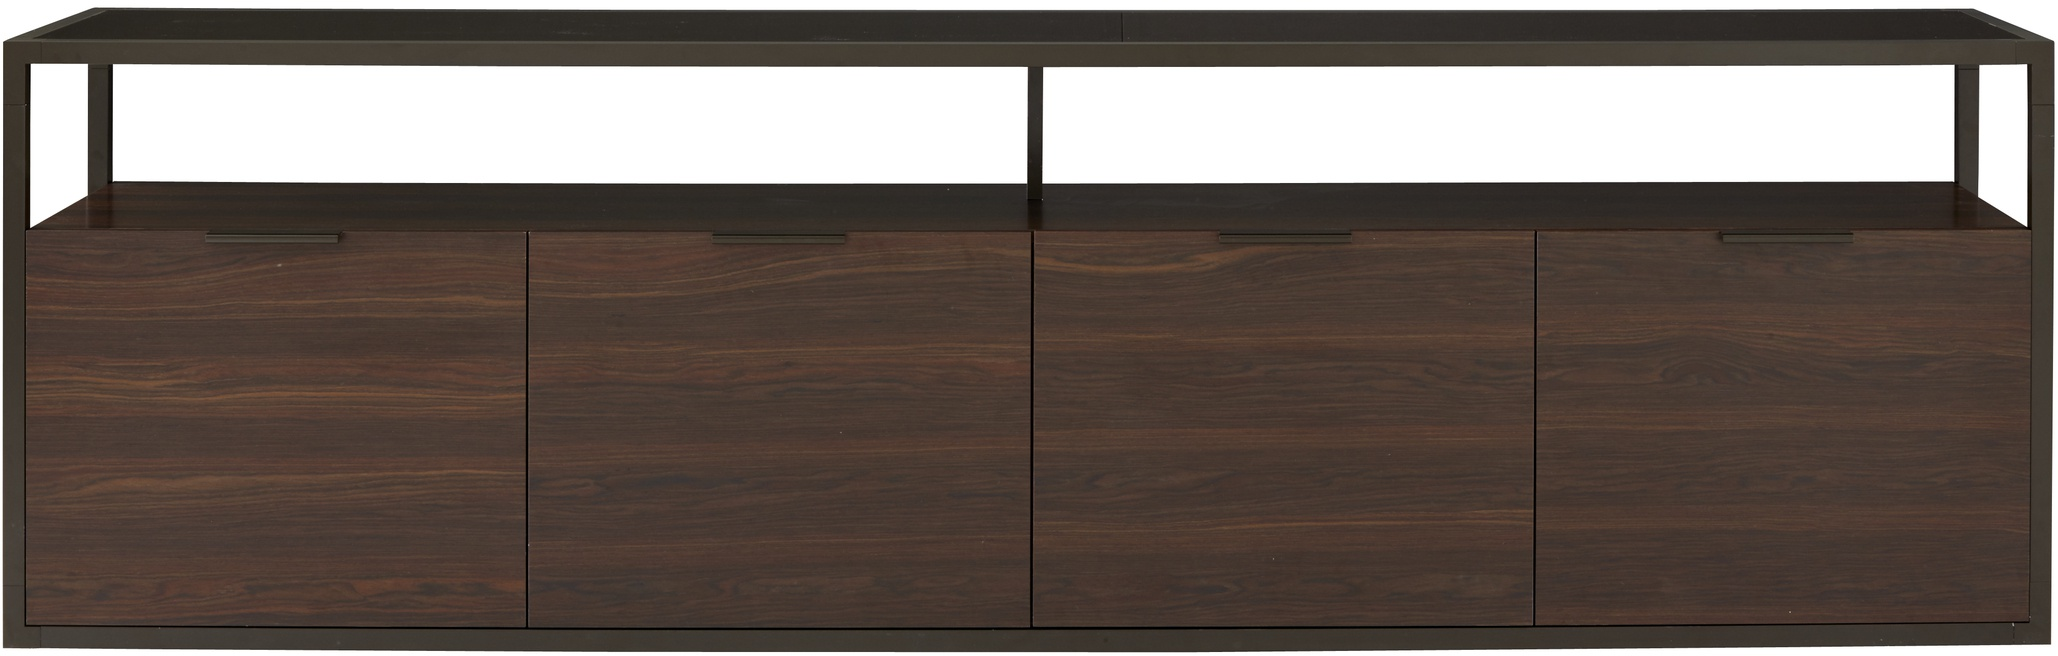 dedicato sideboards from designer didier gomez ligne roset official site. Black Bedroom Furniture Sets. Home Design Ideas